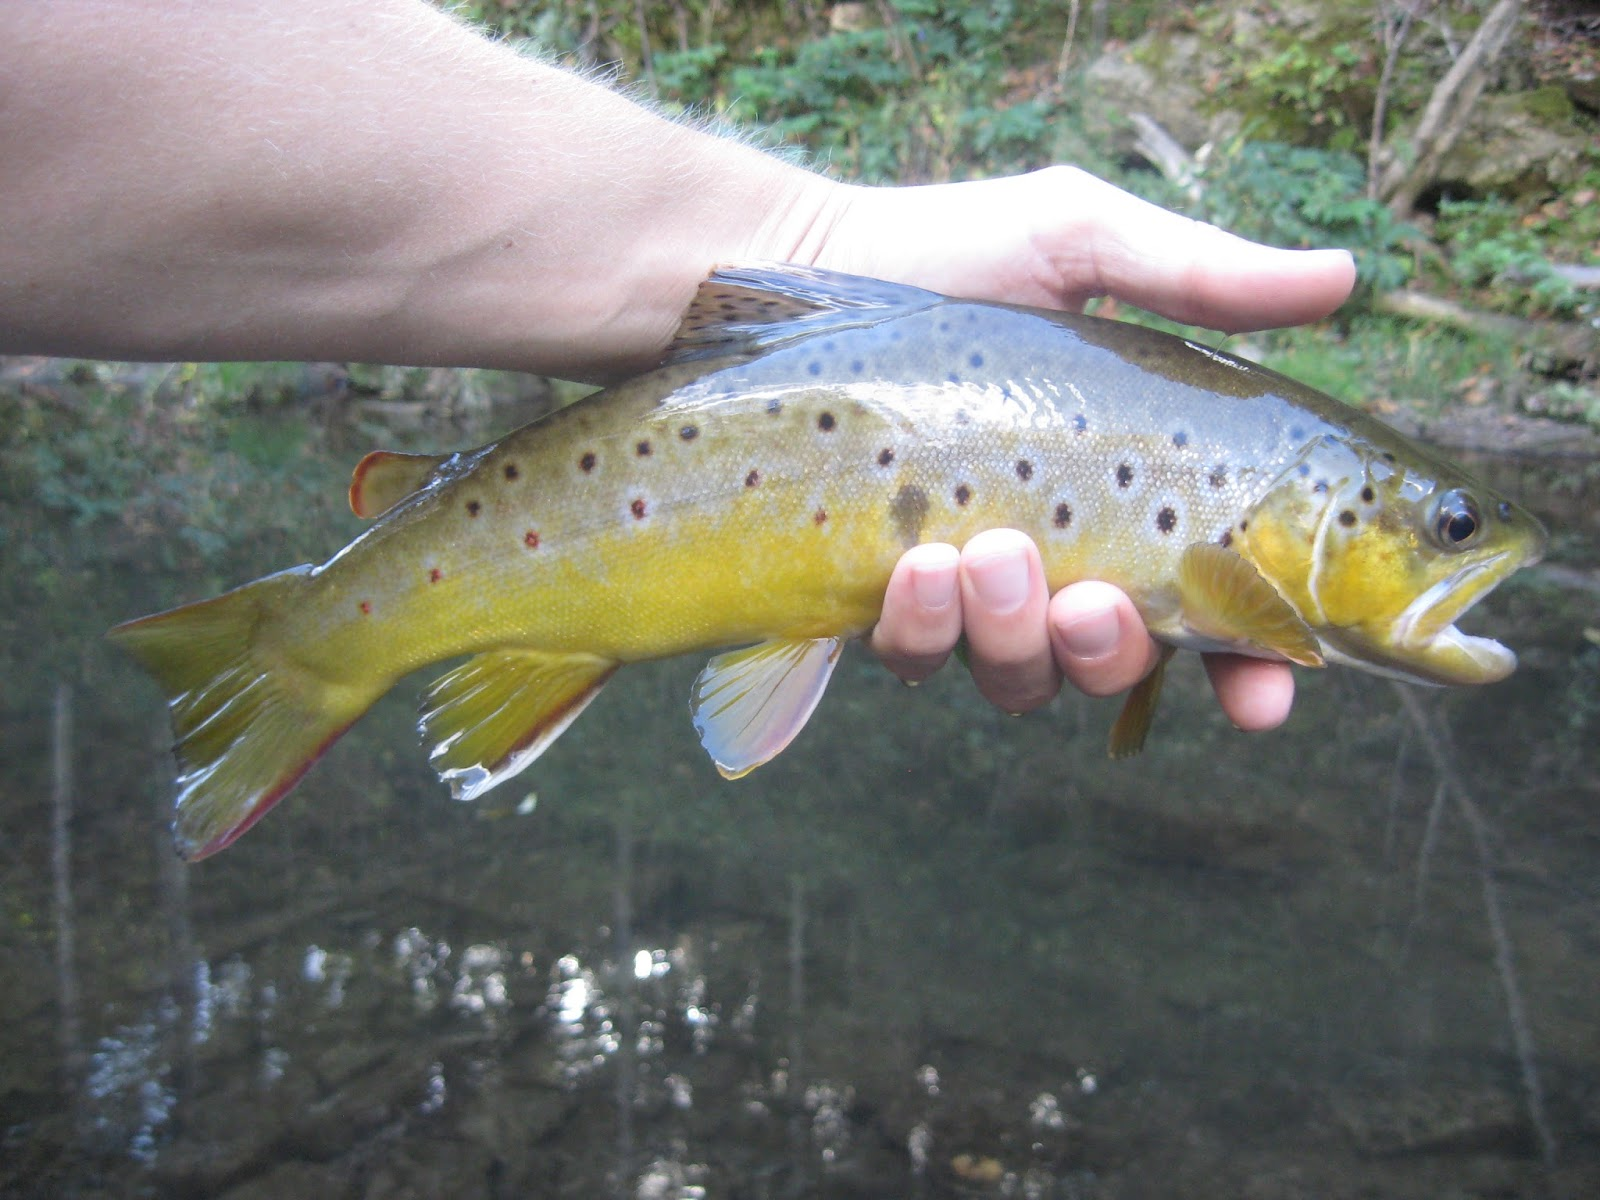 Minnesota driftless fly fishing trip report fall is here for Driftless fly fishing